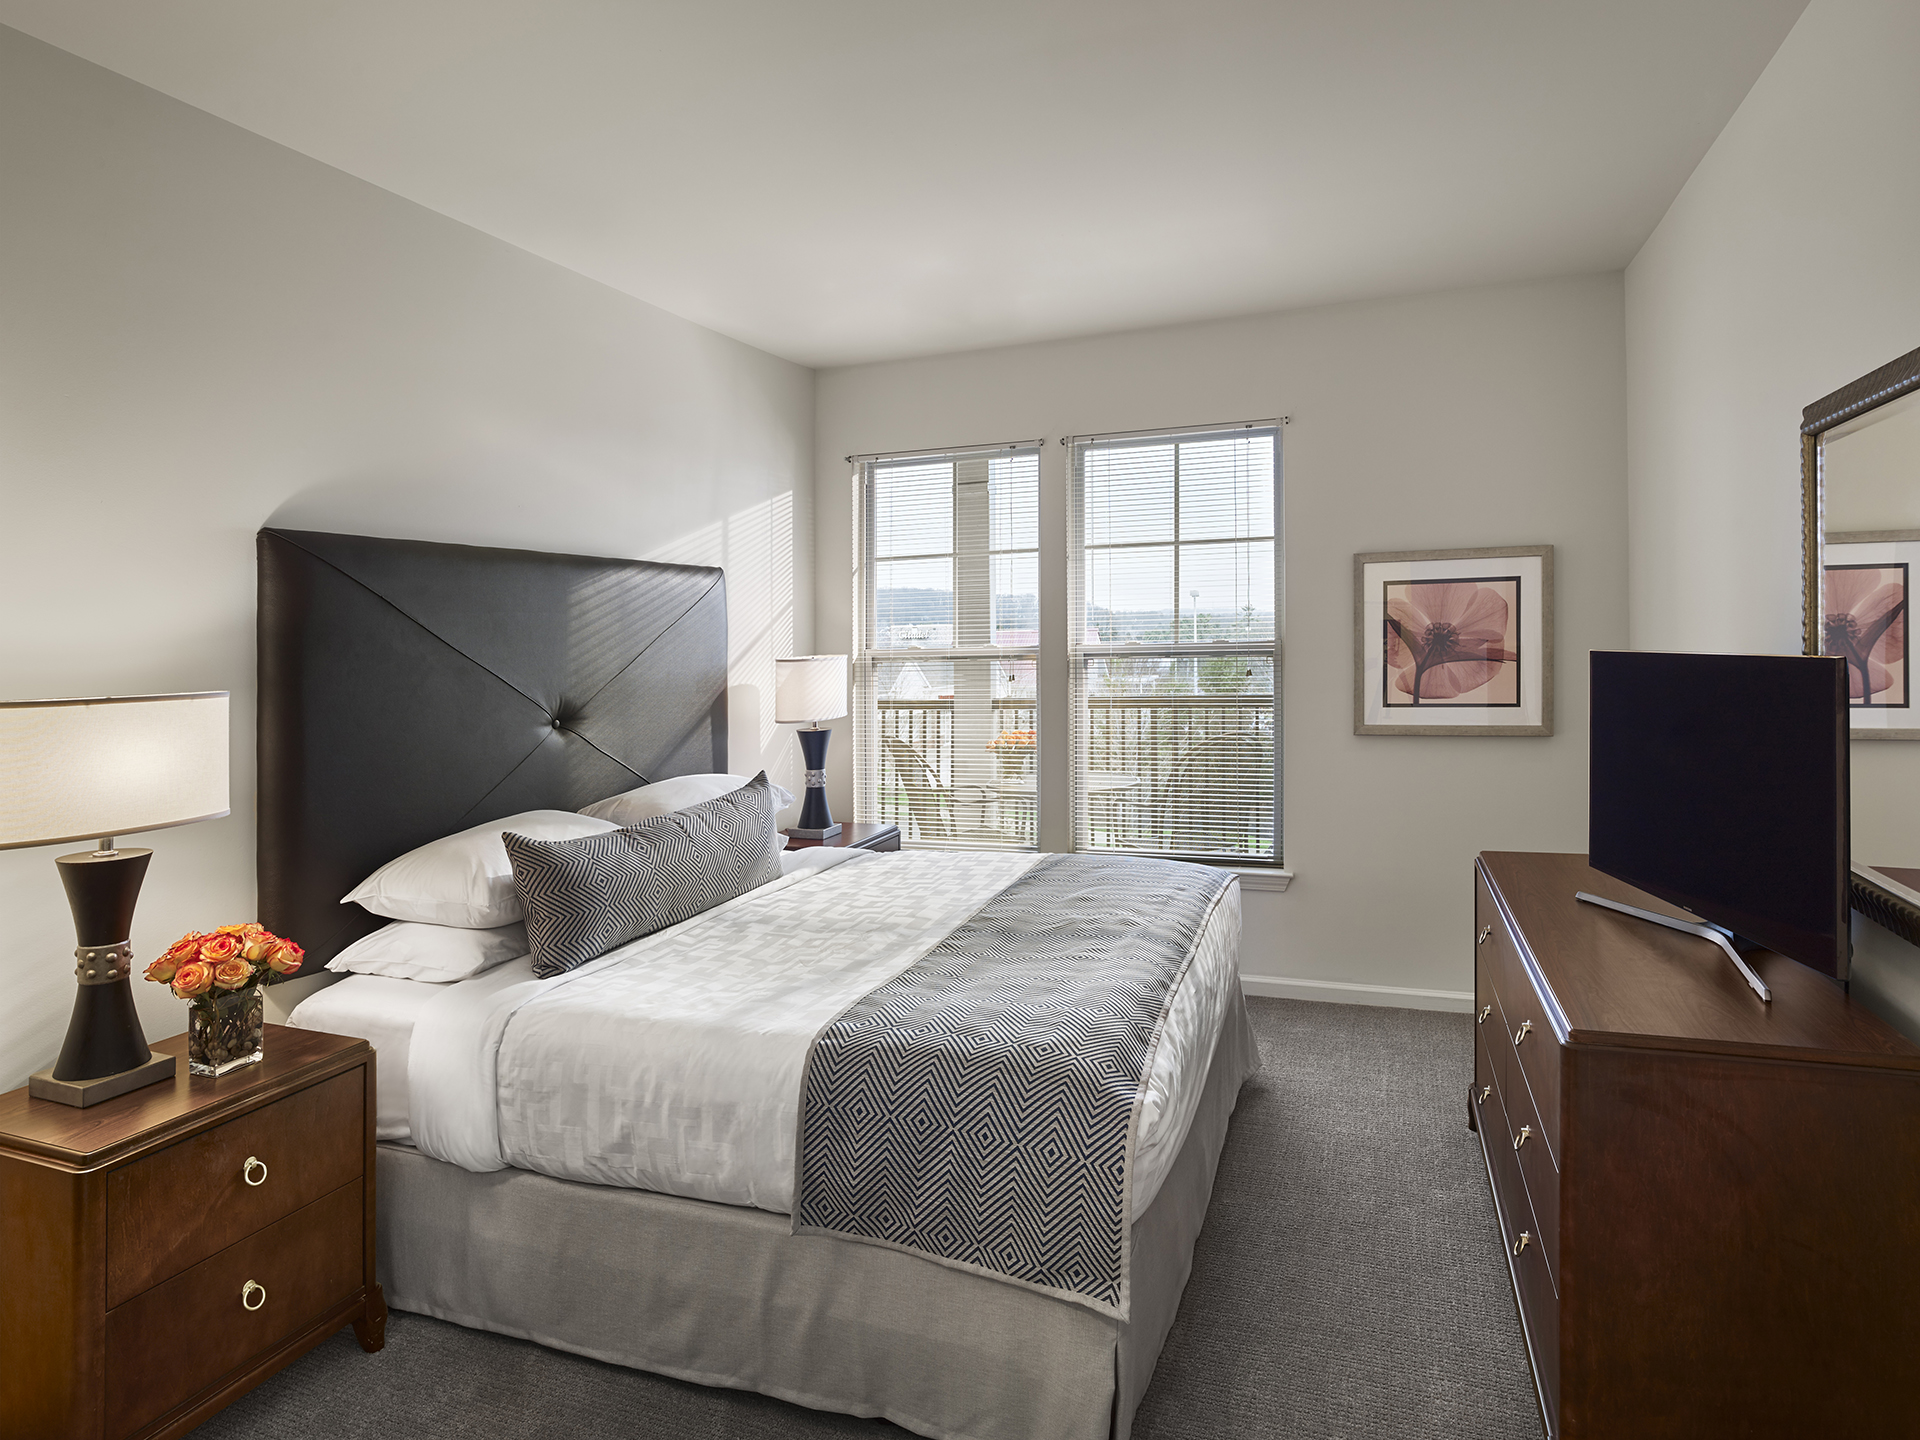 Bedroom at AVE Downingtown Apartments